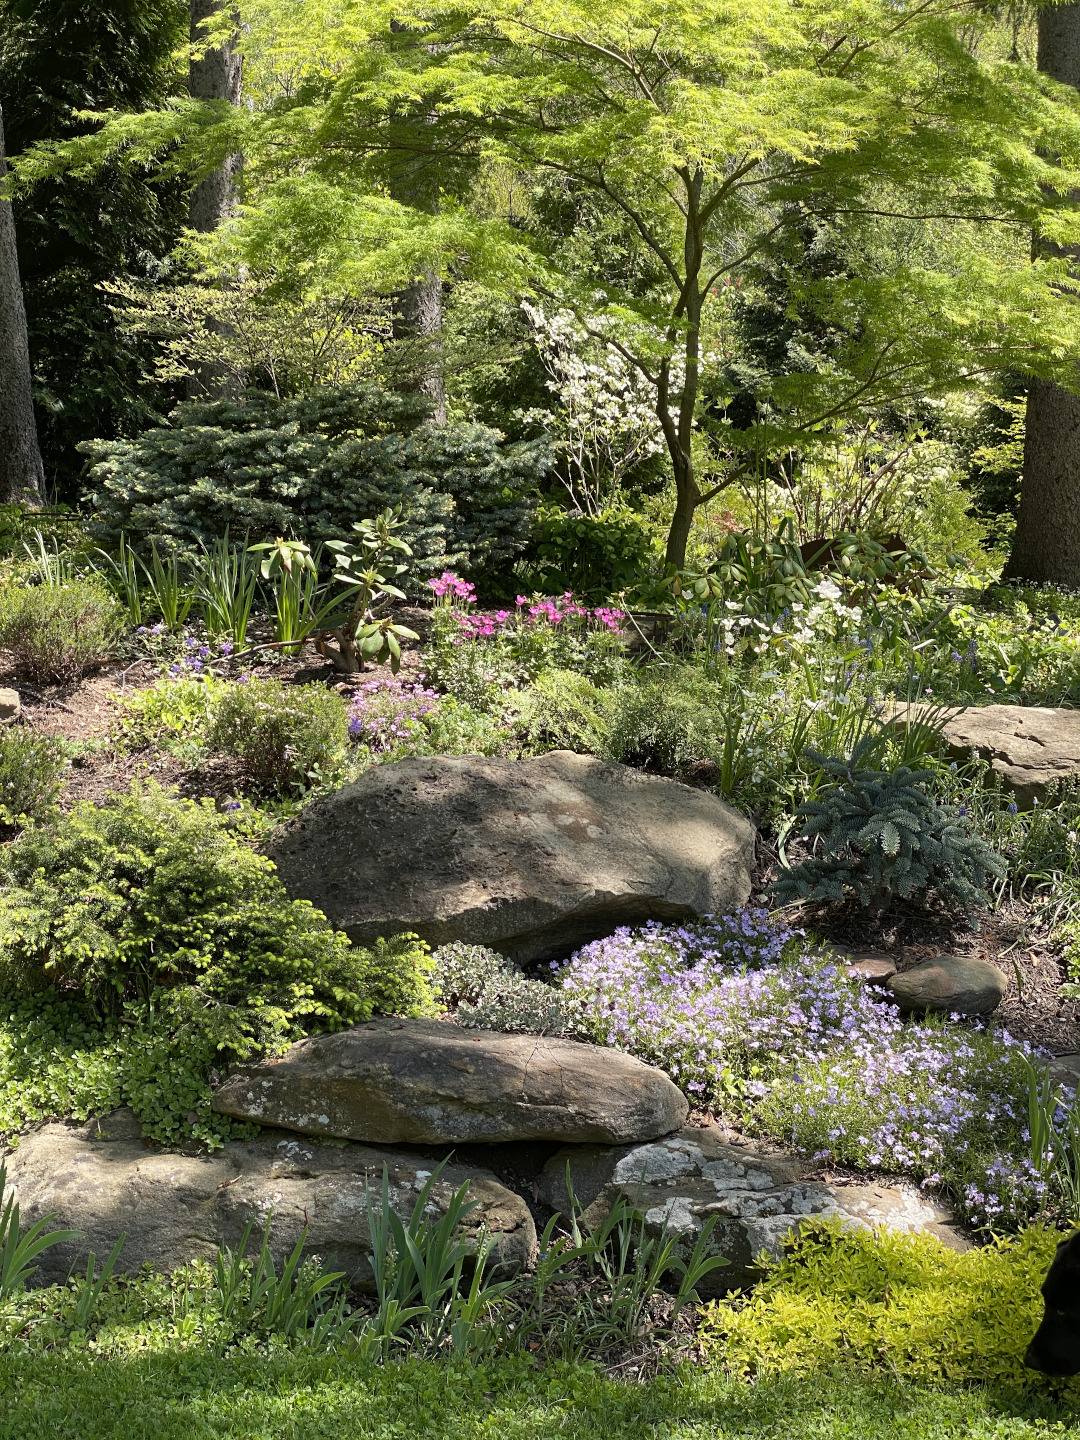 A garden with several large rocks scattered through it